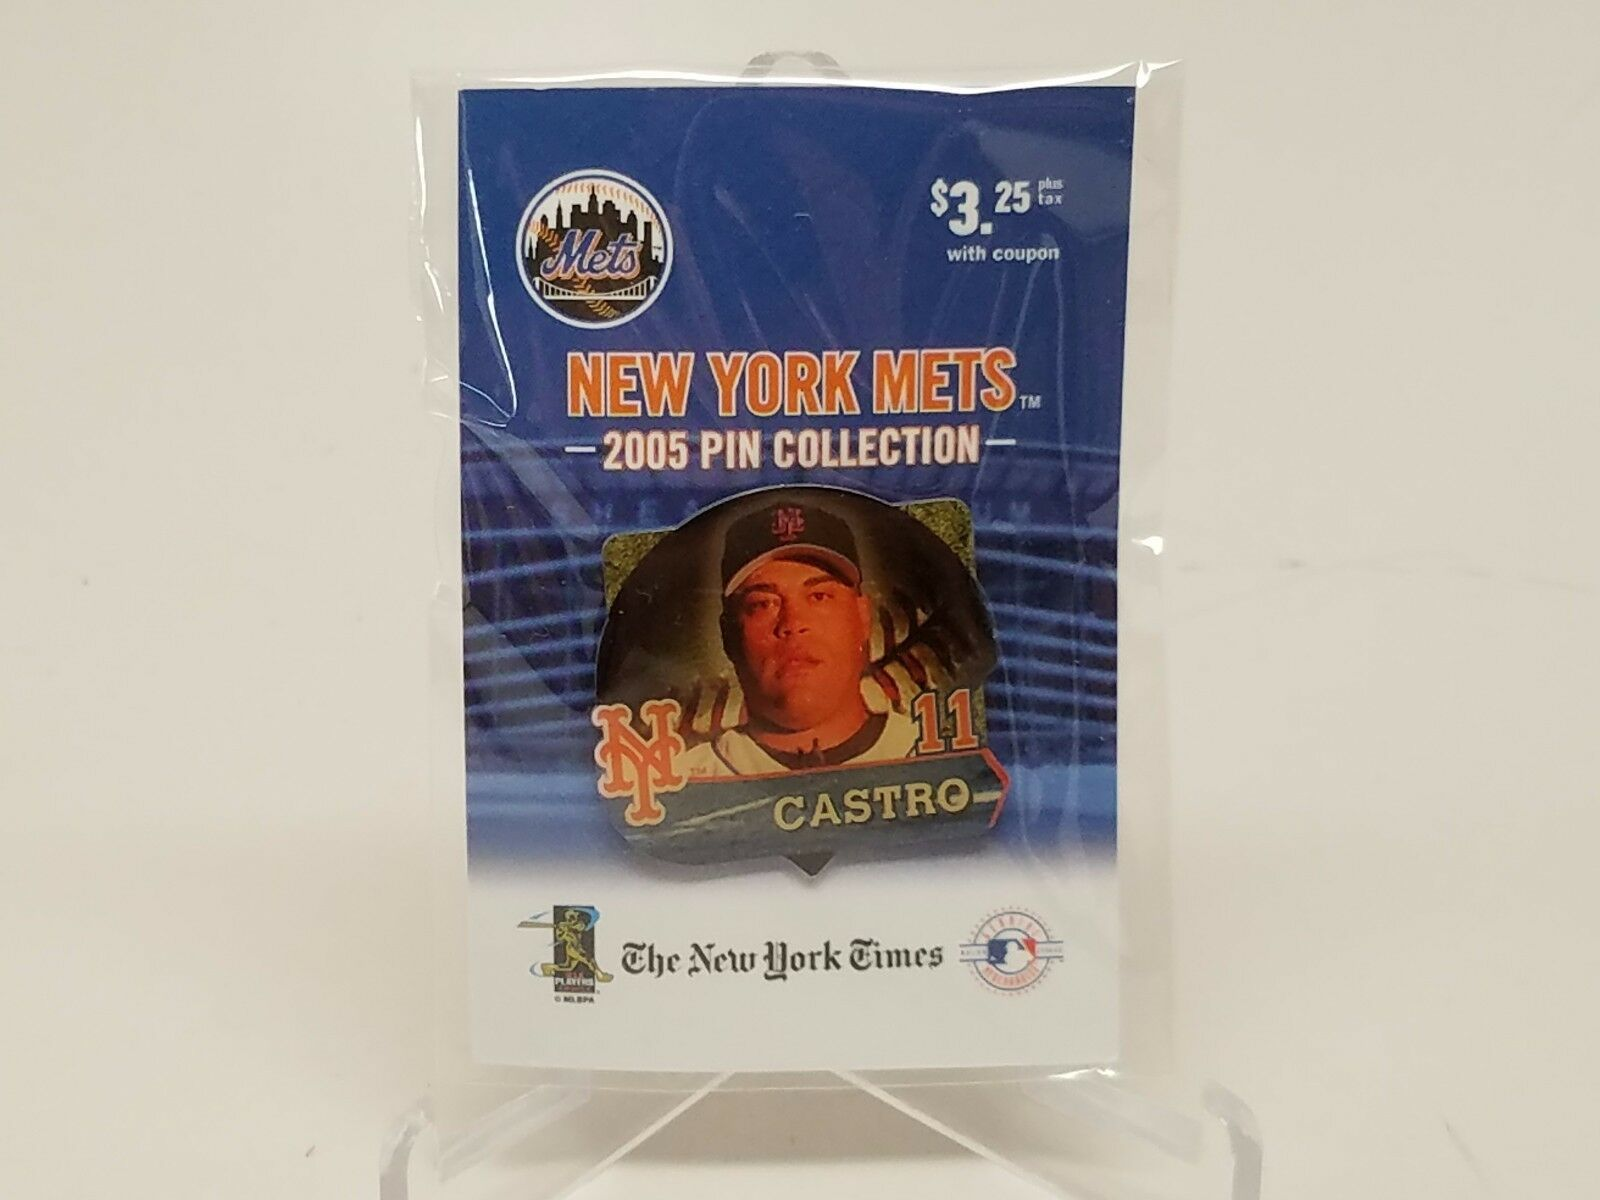 New York Mets 2005 Pin Collection Ramon Castro #15 New York Times New